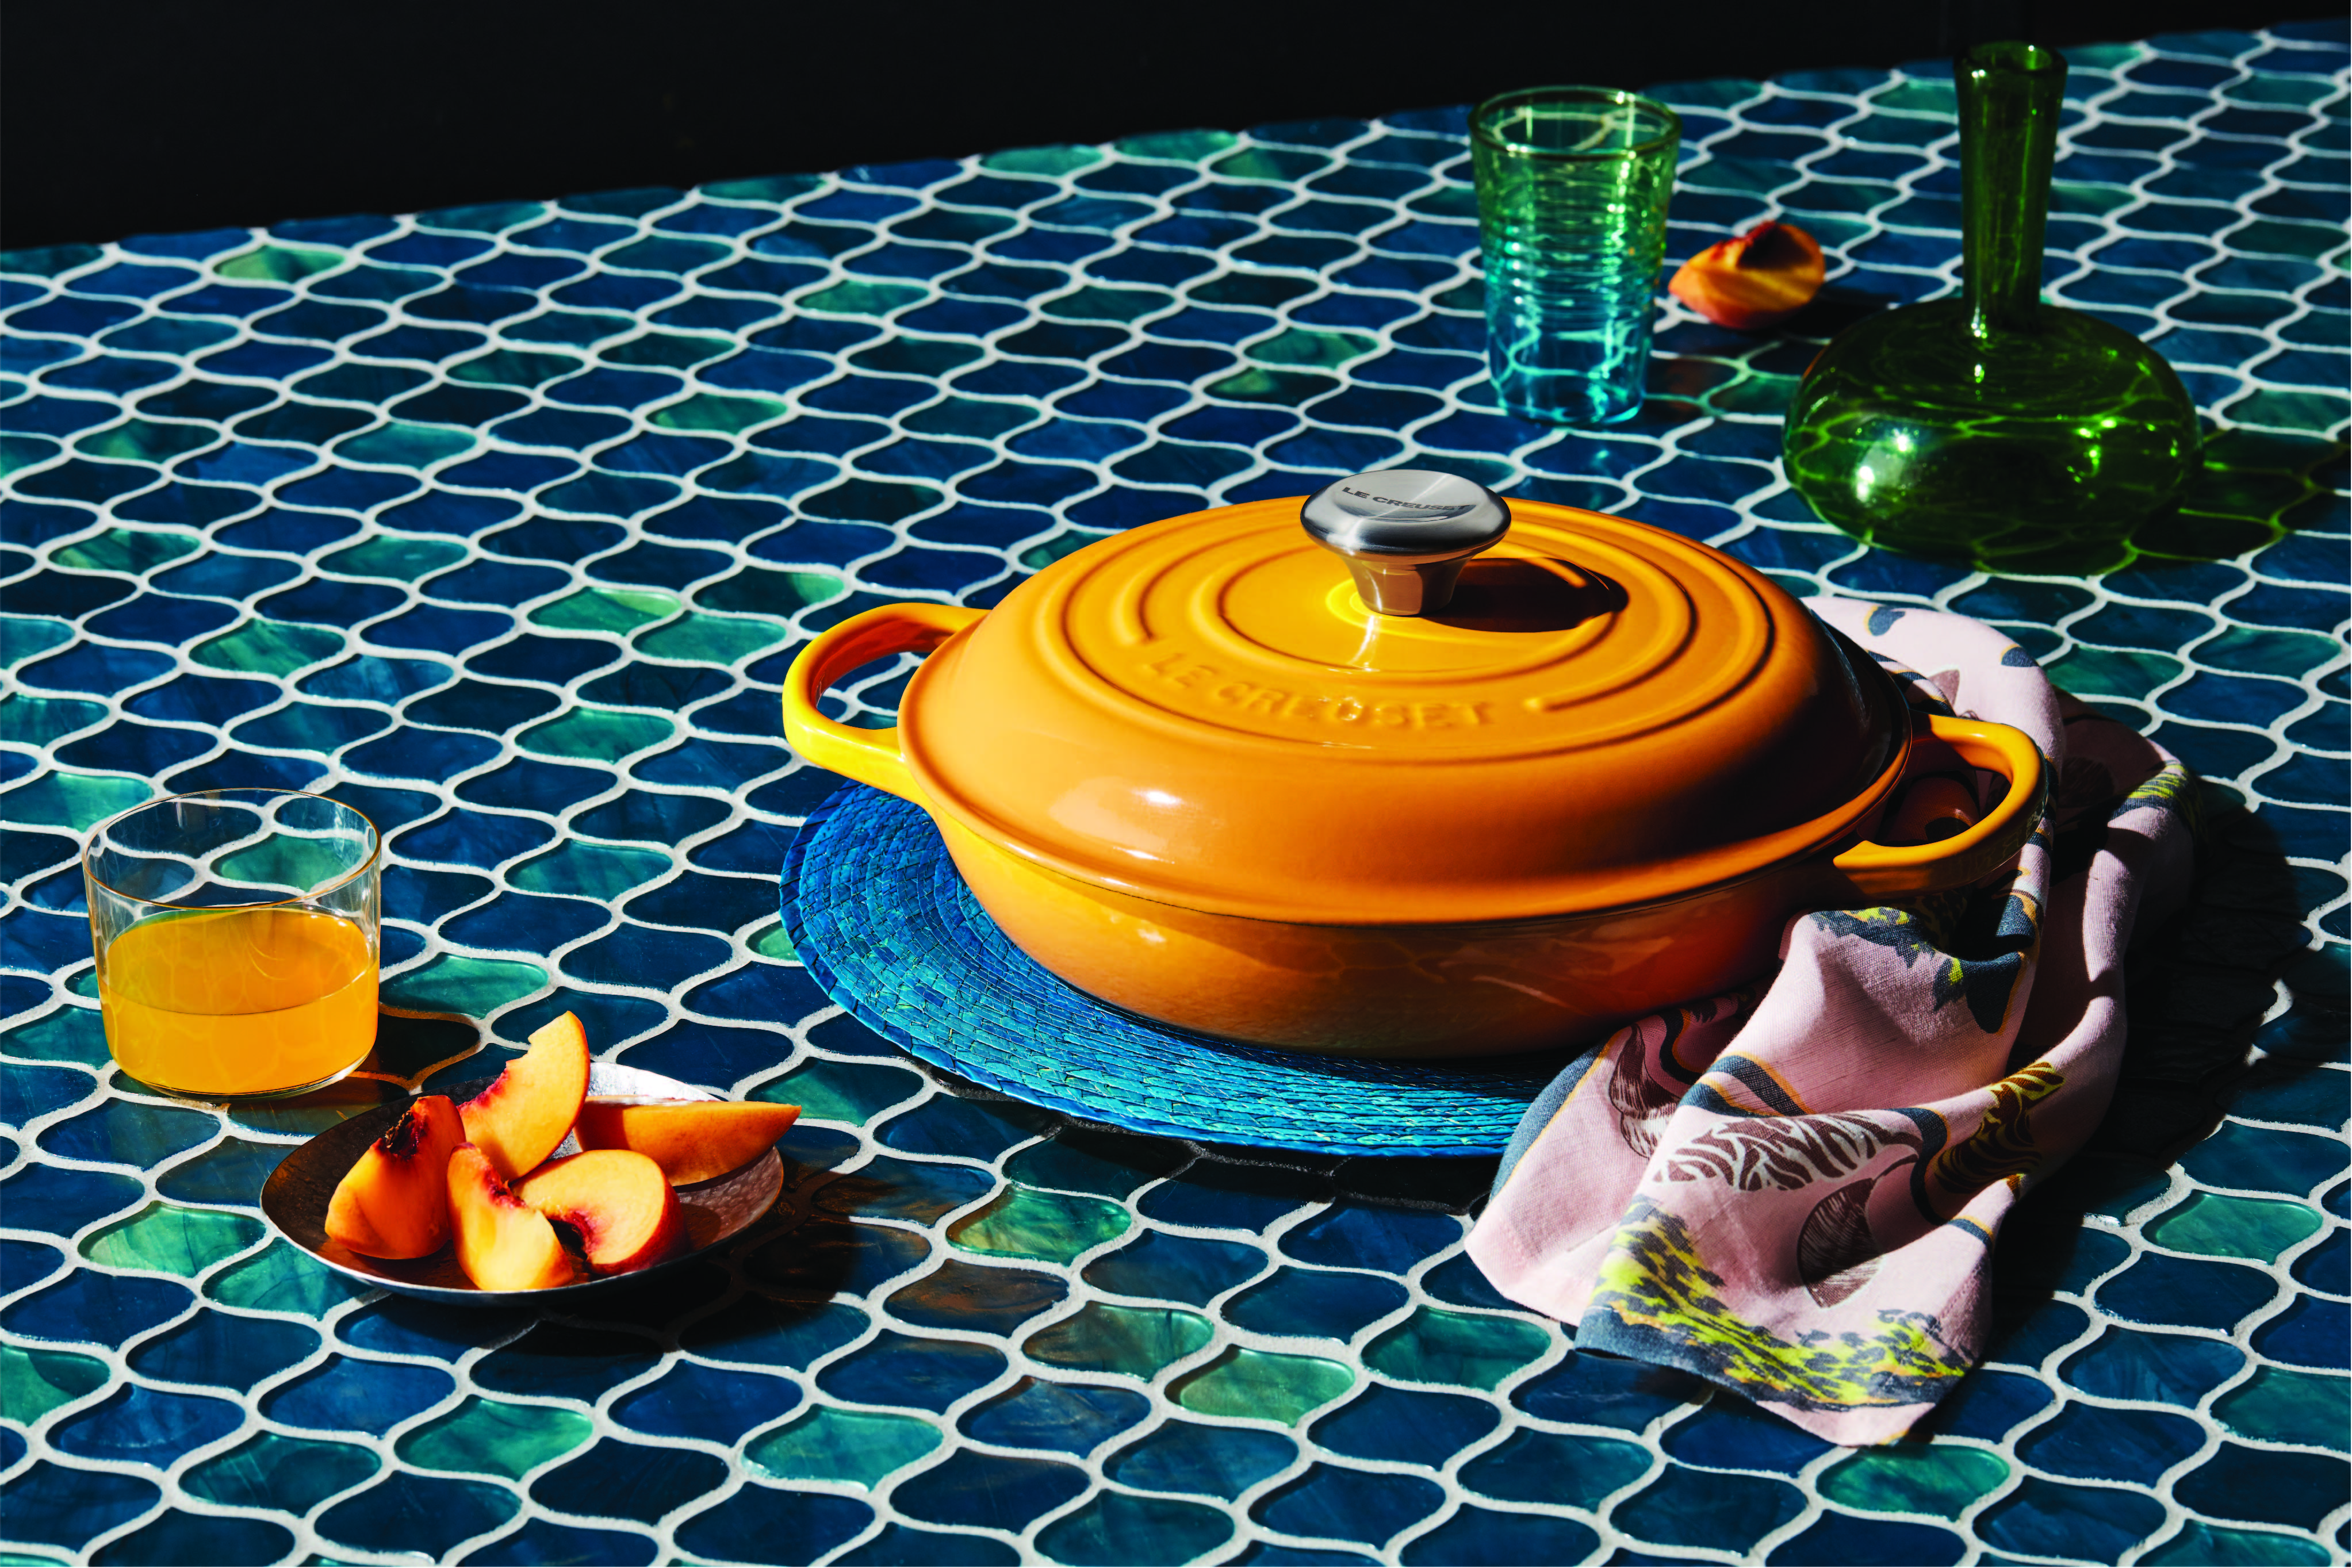 Designed to delight: Nectar by Le Creuset